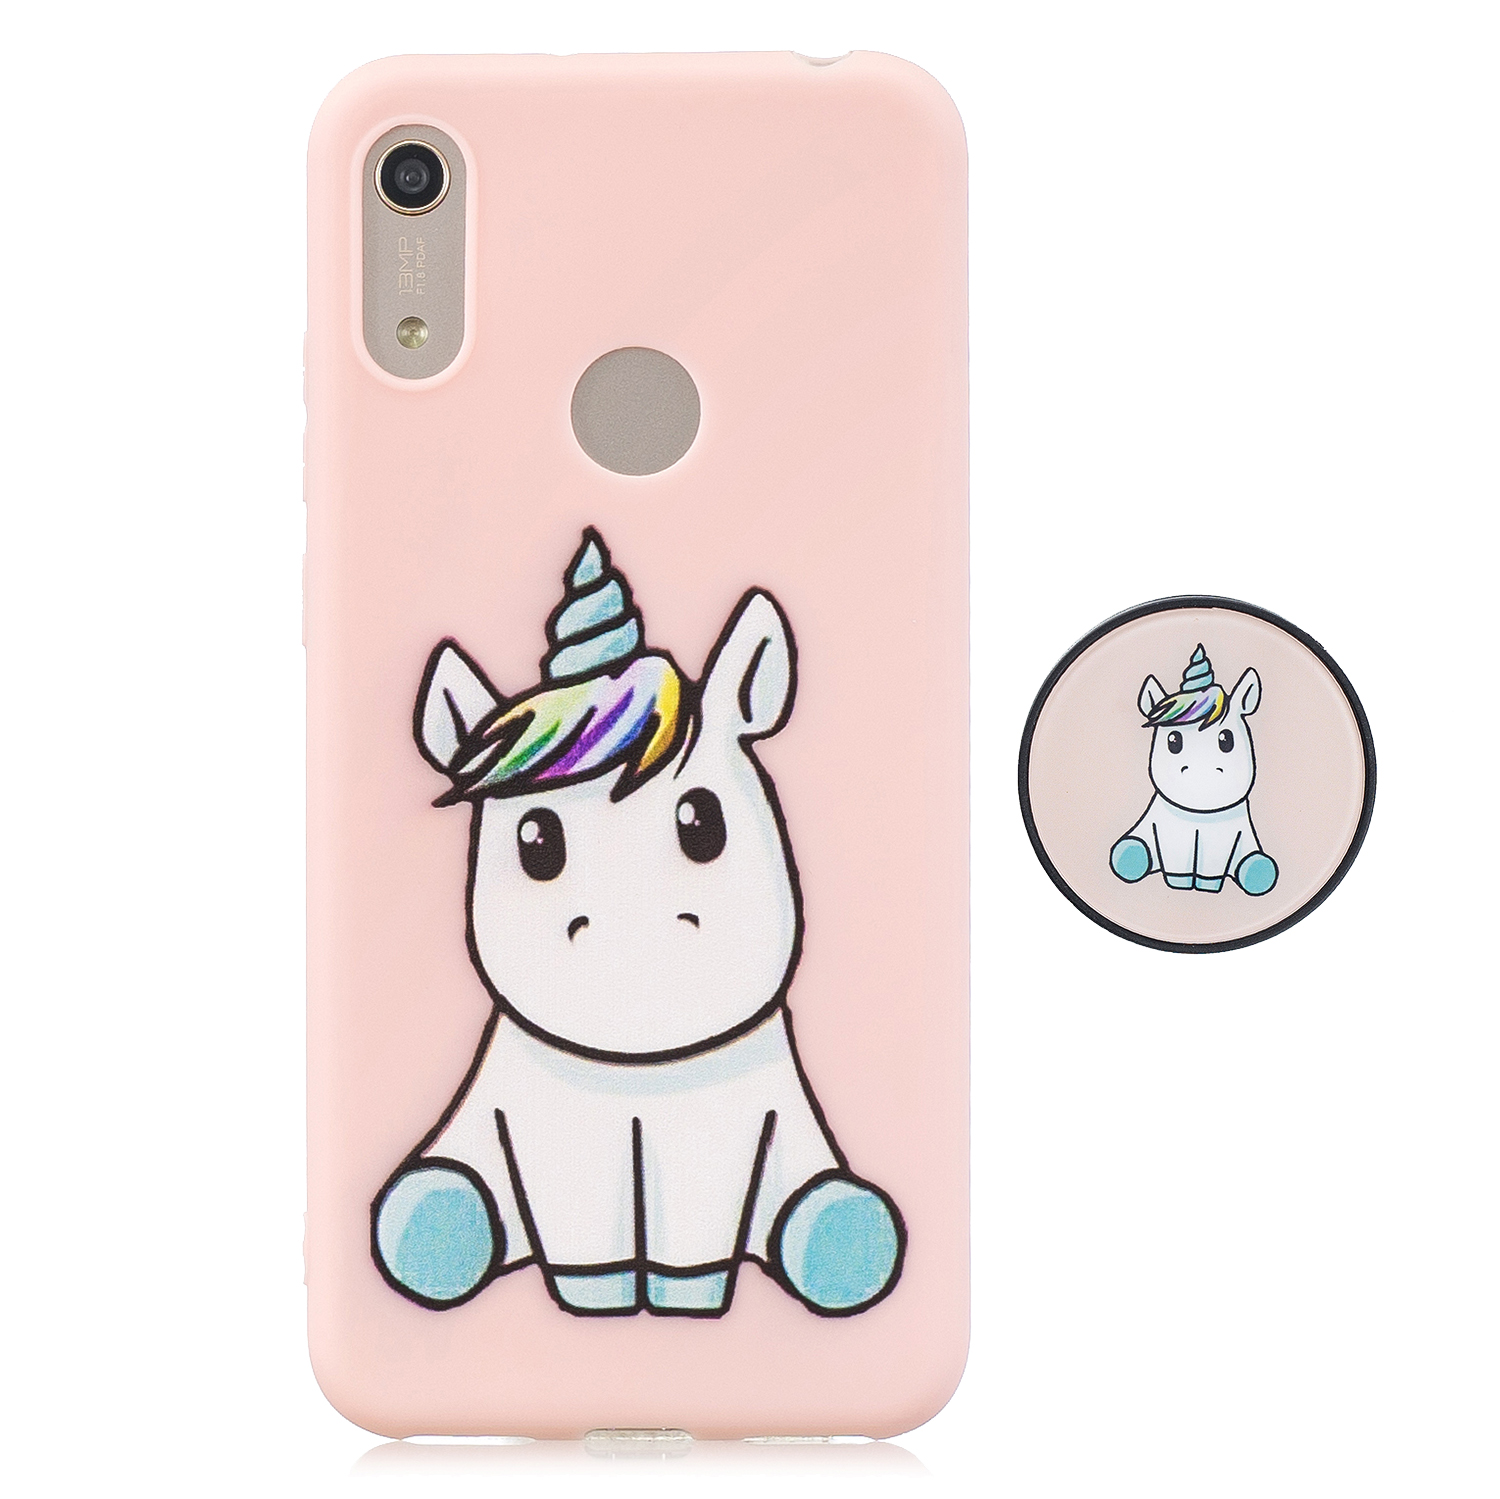 For HUAWEI Y6 2019 Flexible Stand Holder Case Soft TPU Full Cover Case Phone Cover Cute Phone Case 6